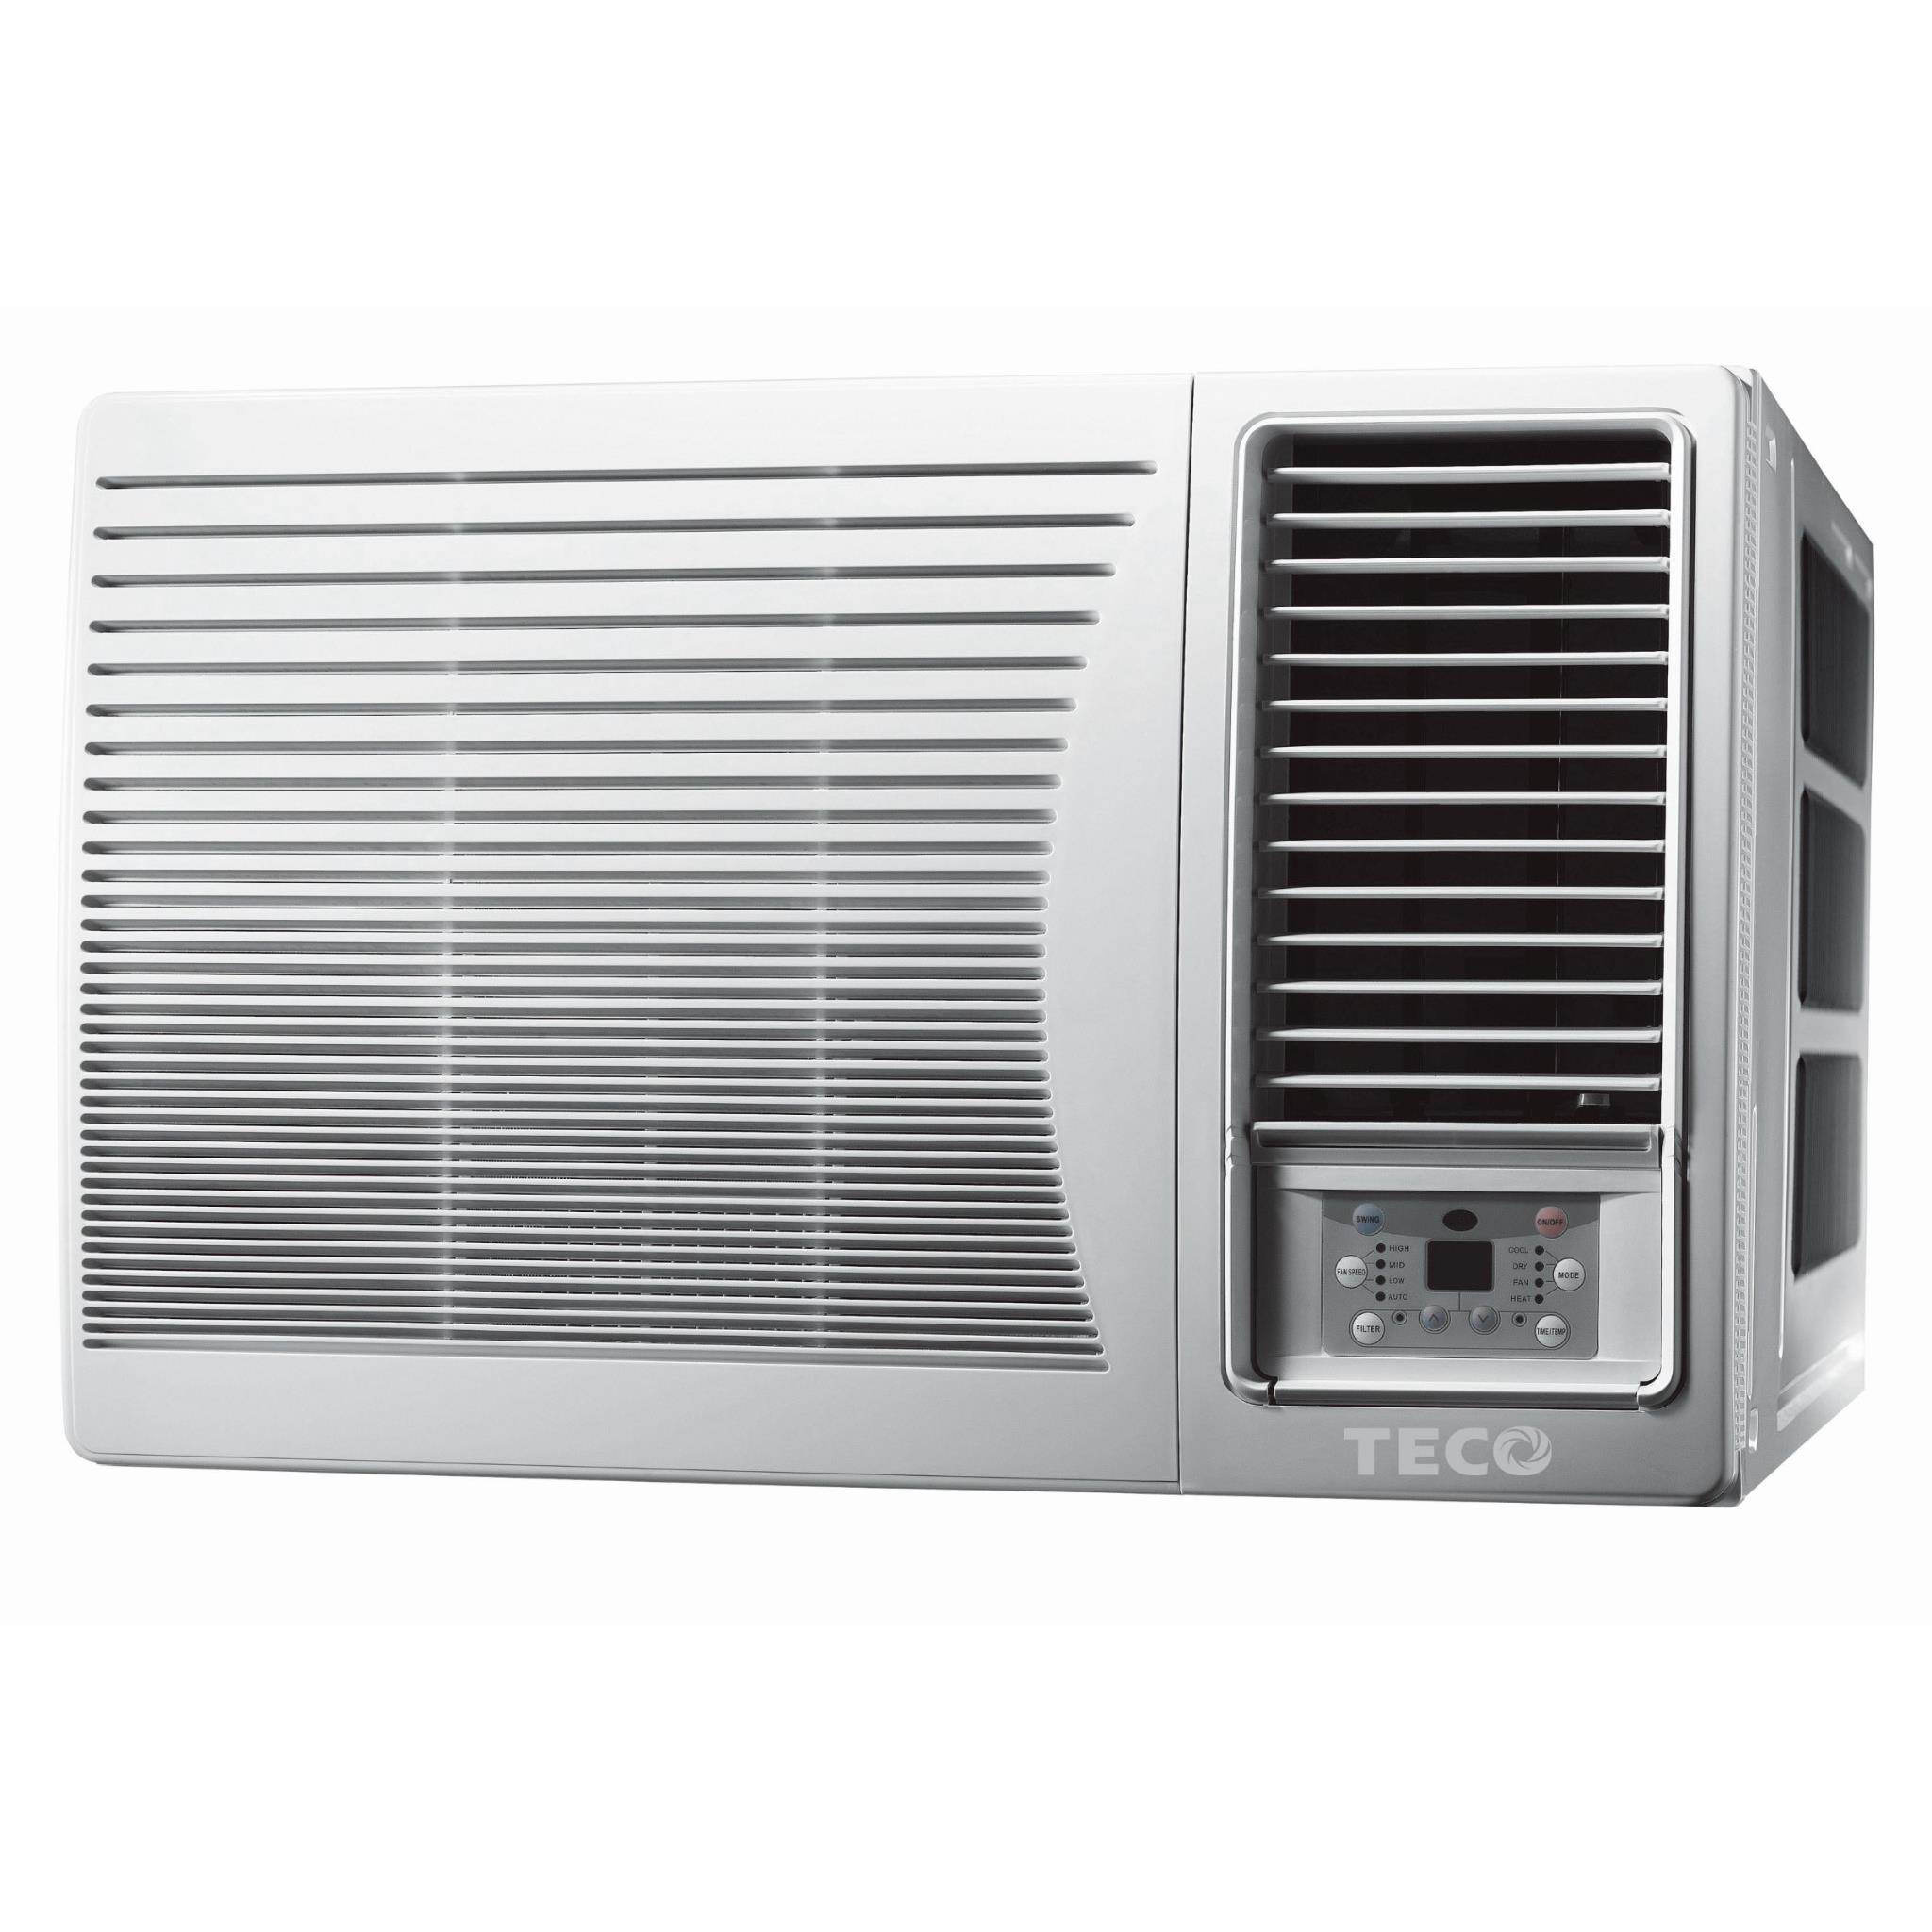 Teco 2.7kW Window/Wall Room Cooling Only Air Conditioner